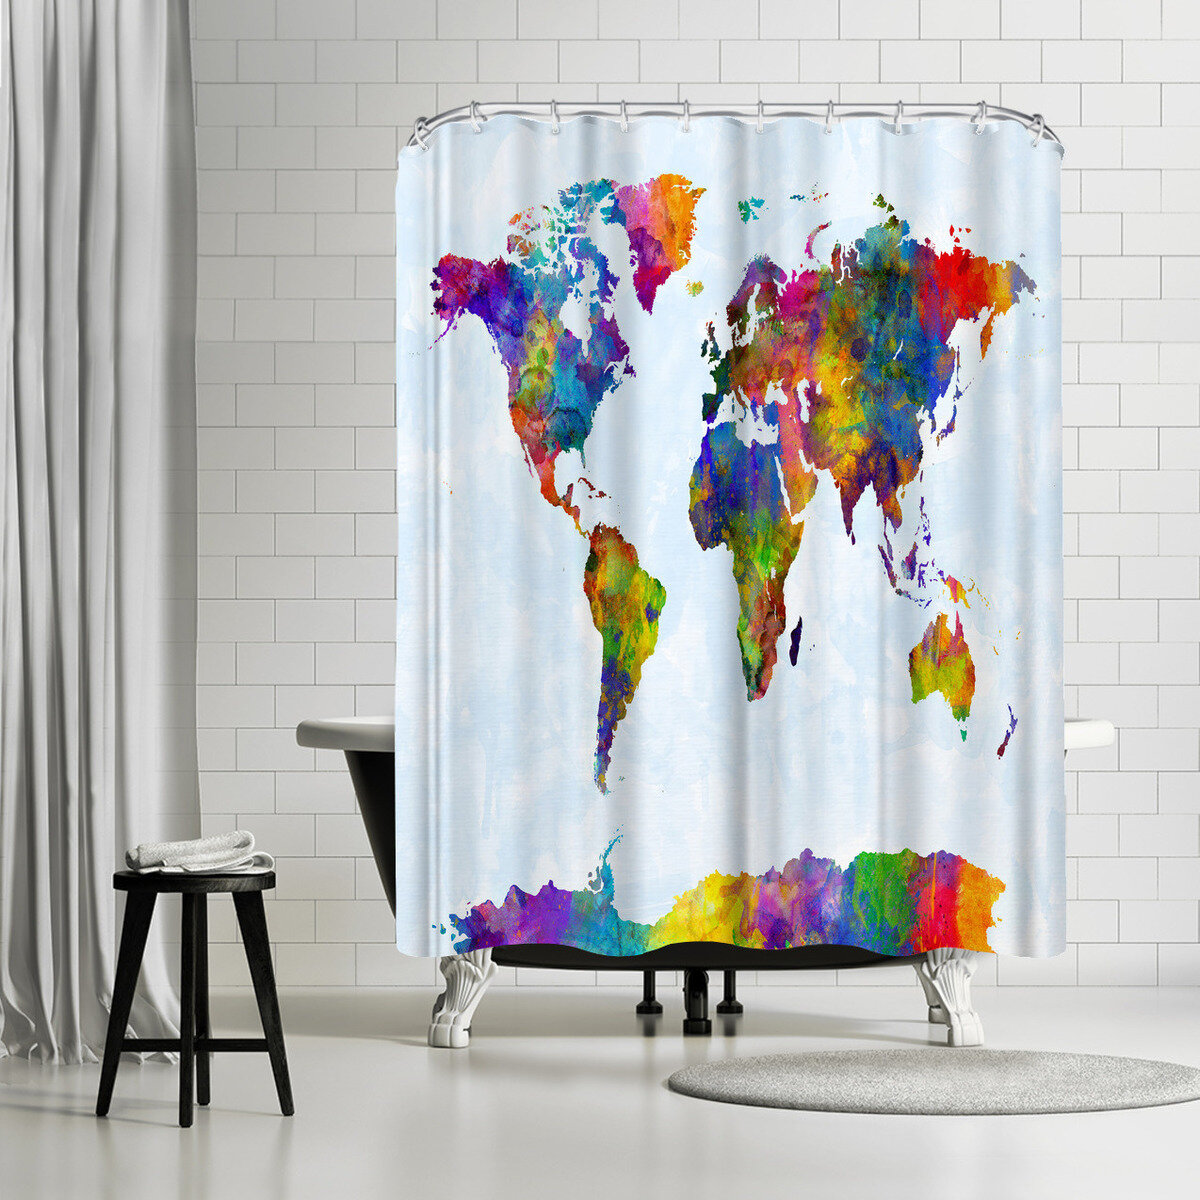 East Urban Home Michael Tompsett Single Shower Curtain Wayfair